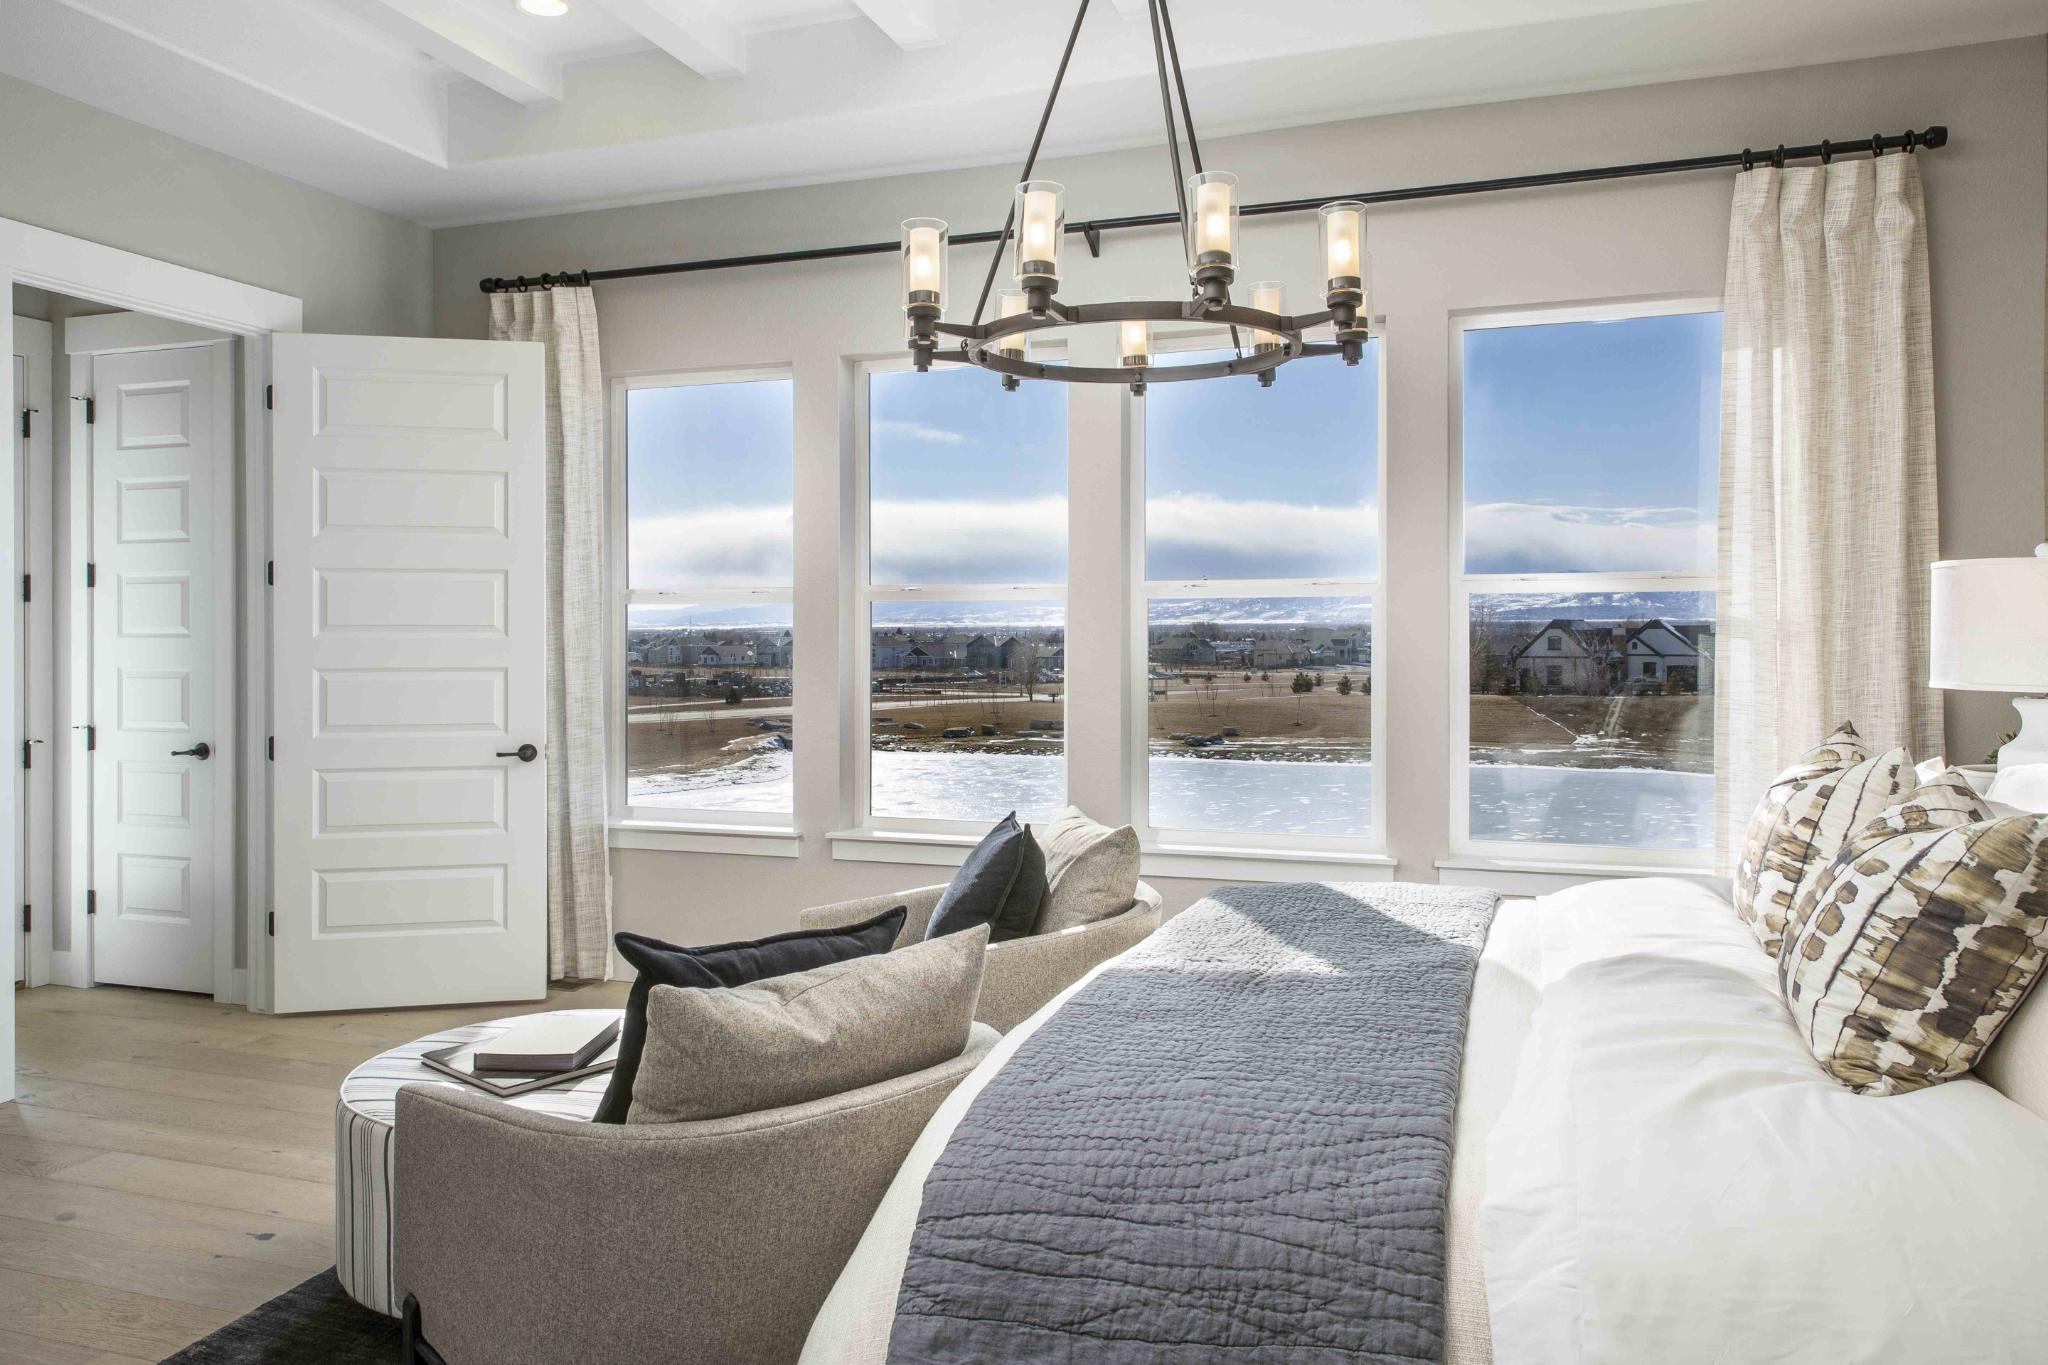 Bedroom featured in the Plan C652 By American Legend Homes in Denver, CO